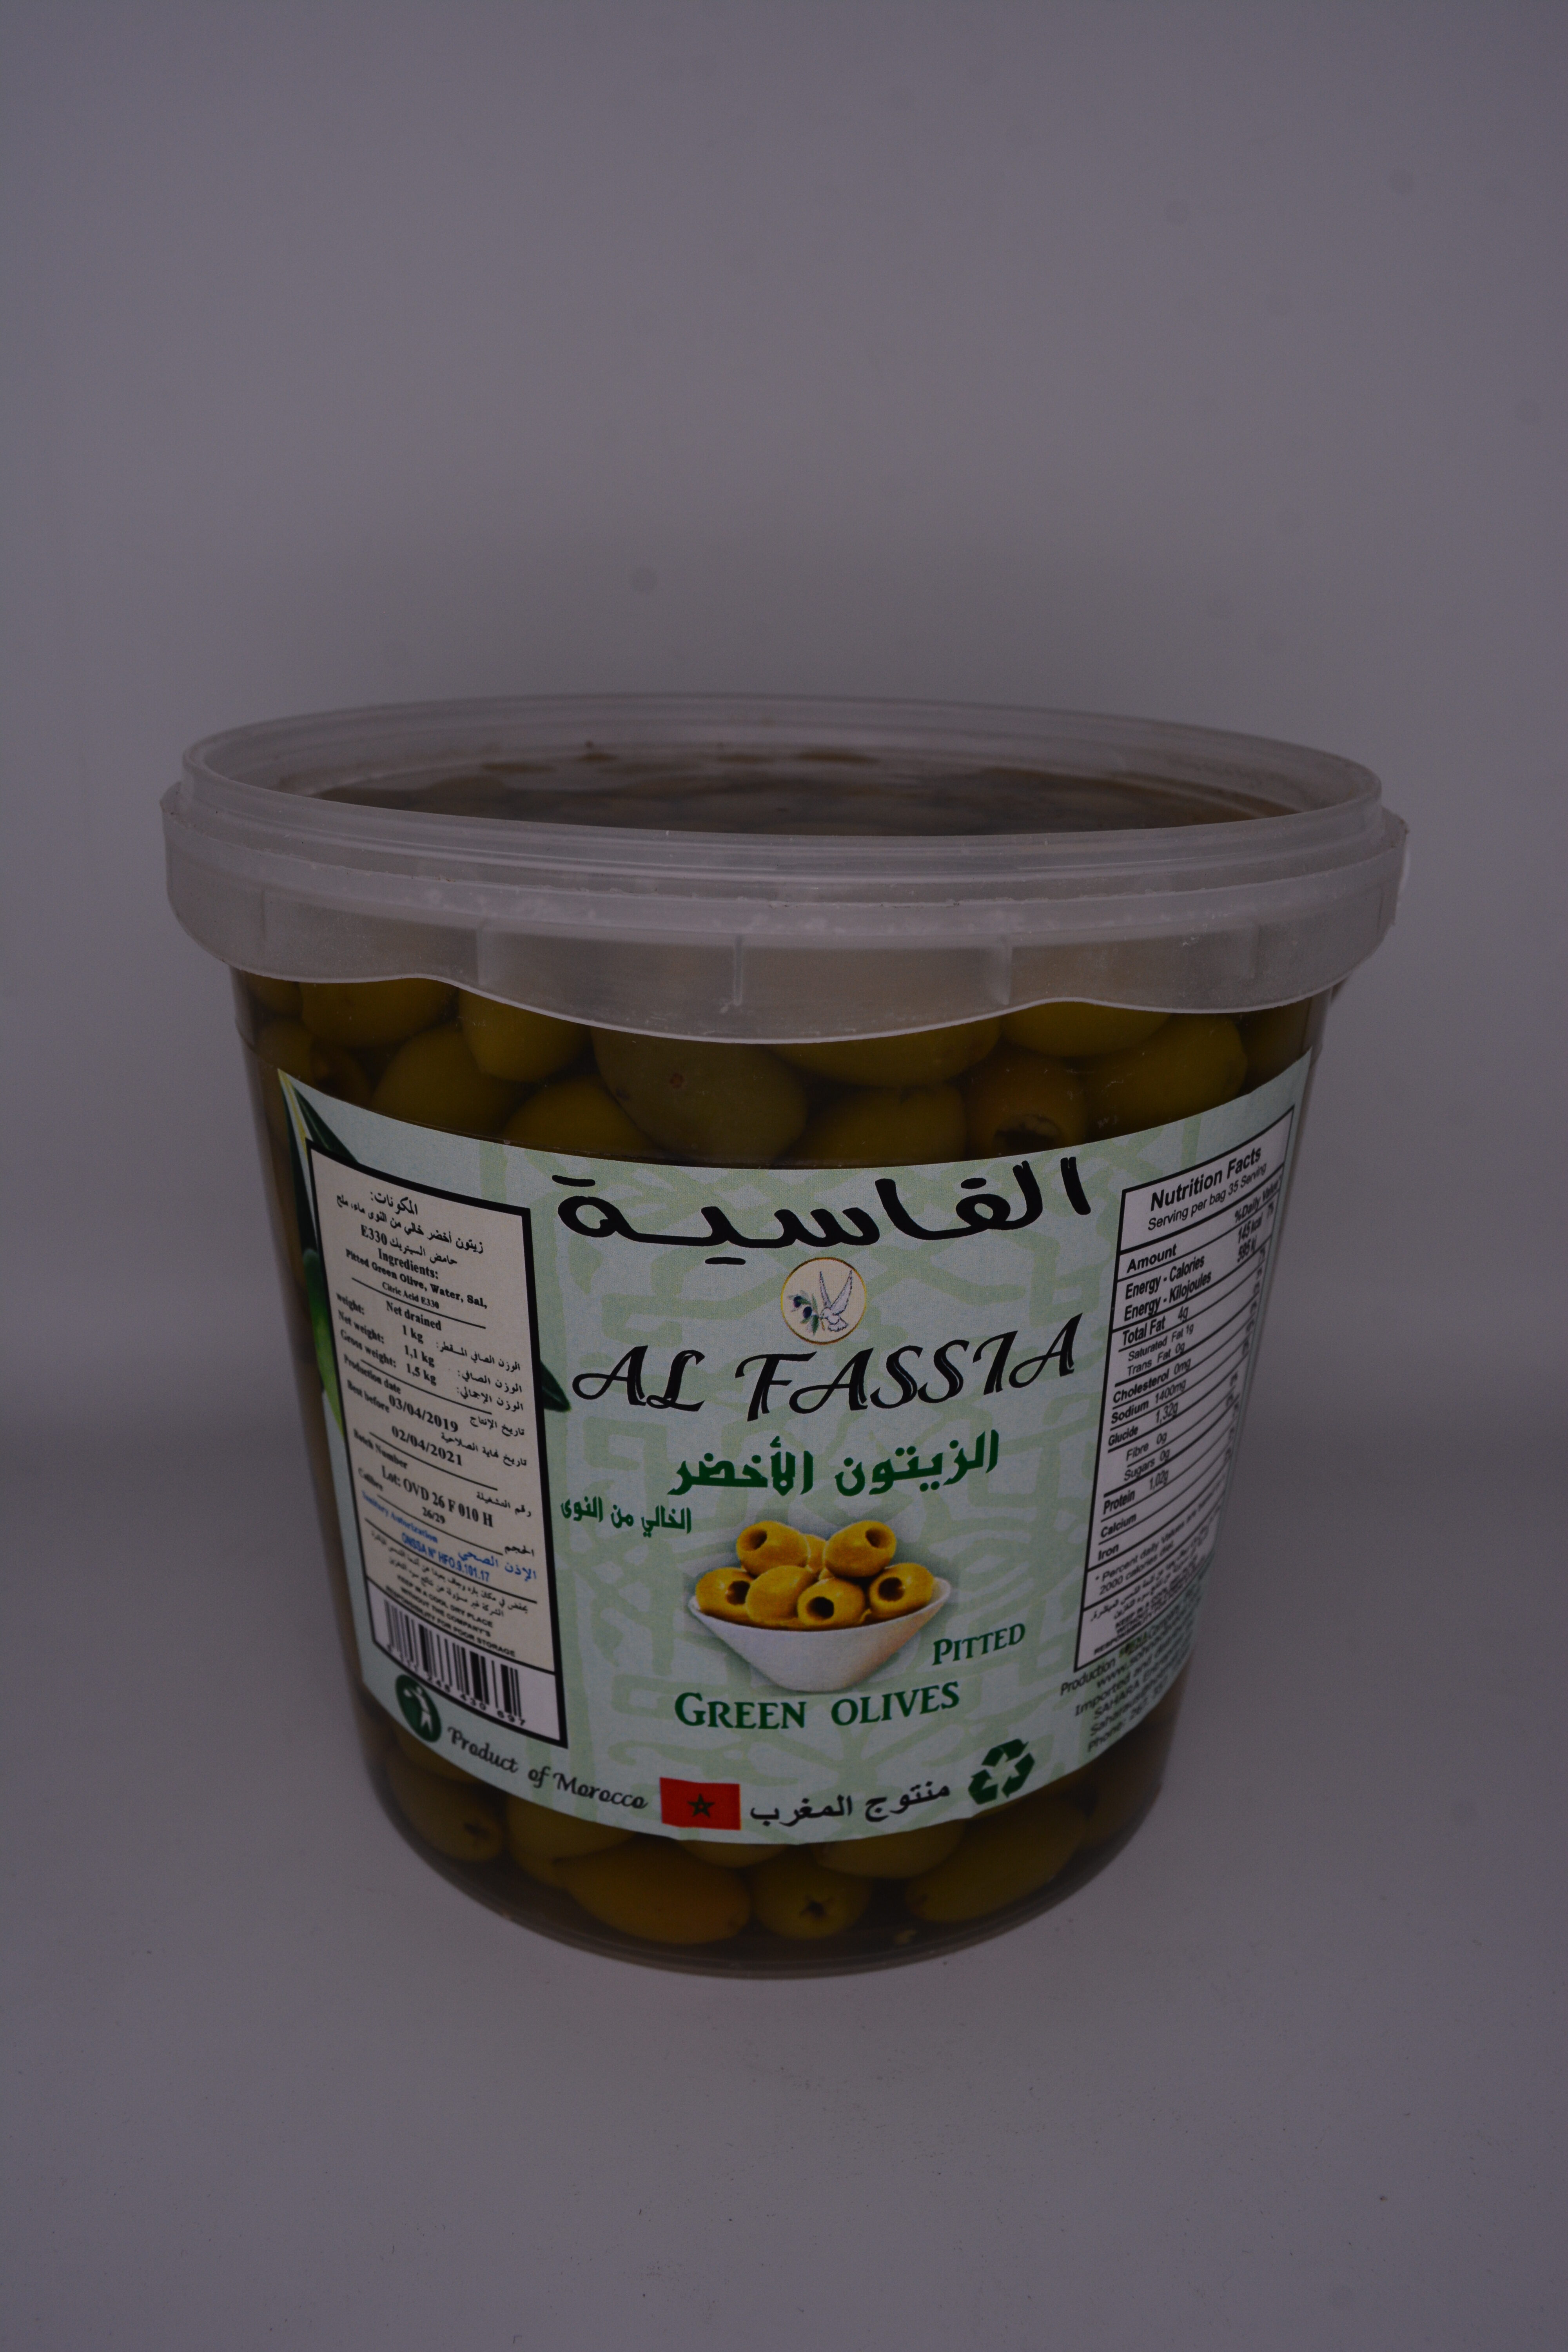 AL FASSIA PITTED GREEN OLIVES - Product - en